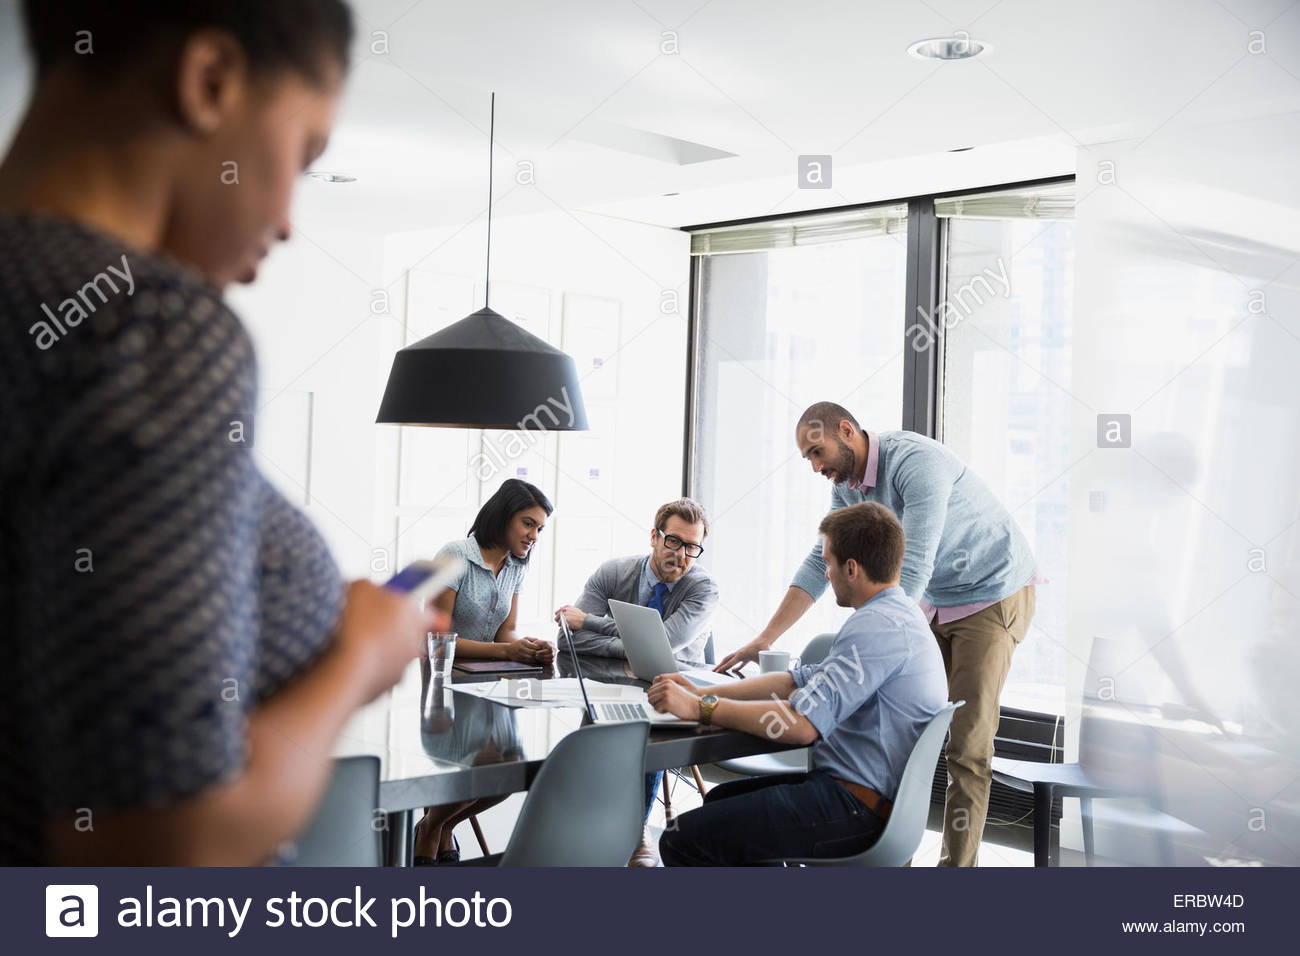 Business people working at laptop conference room meeting - Stock Image